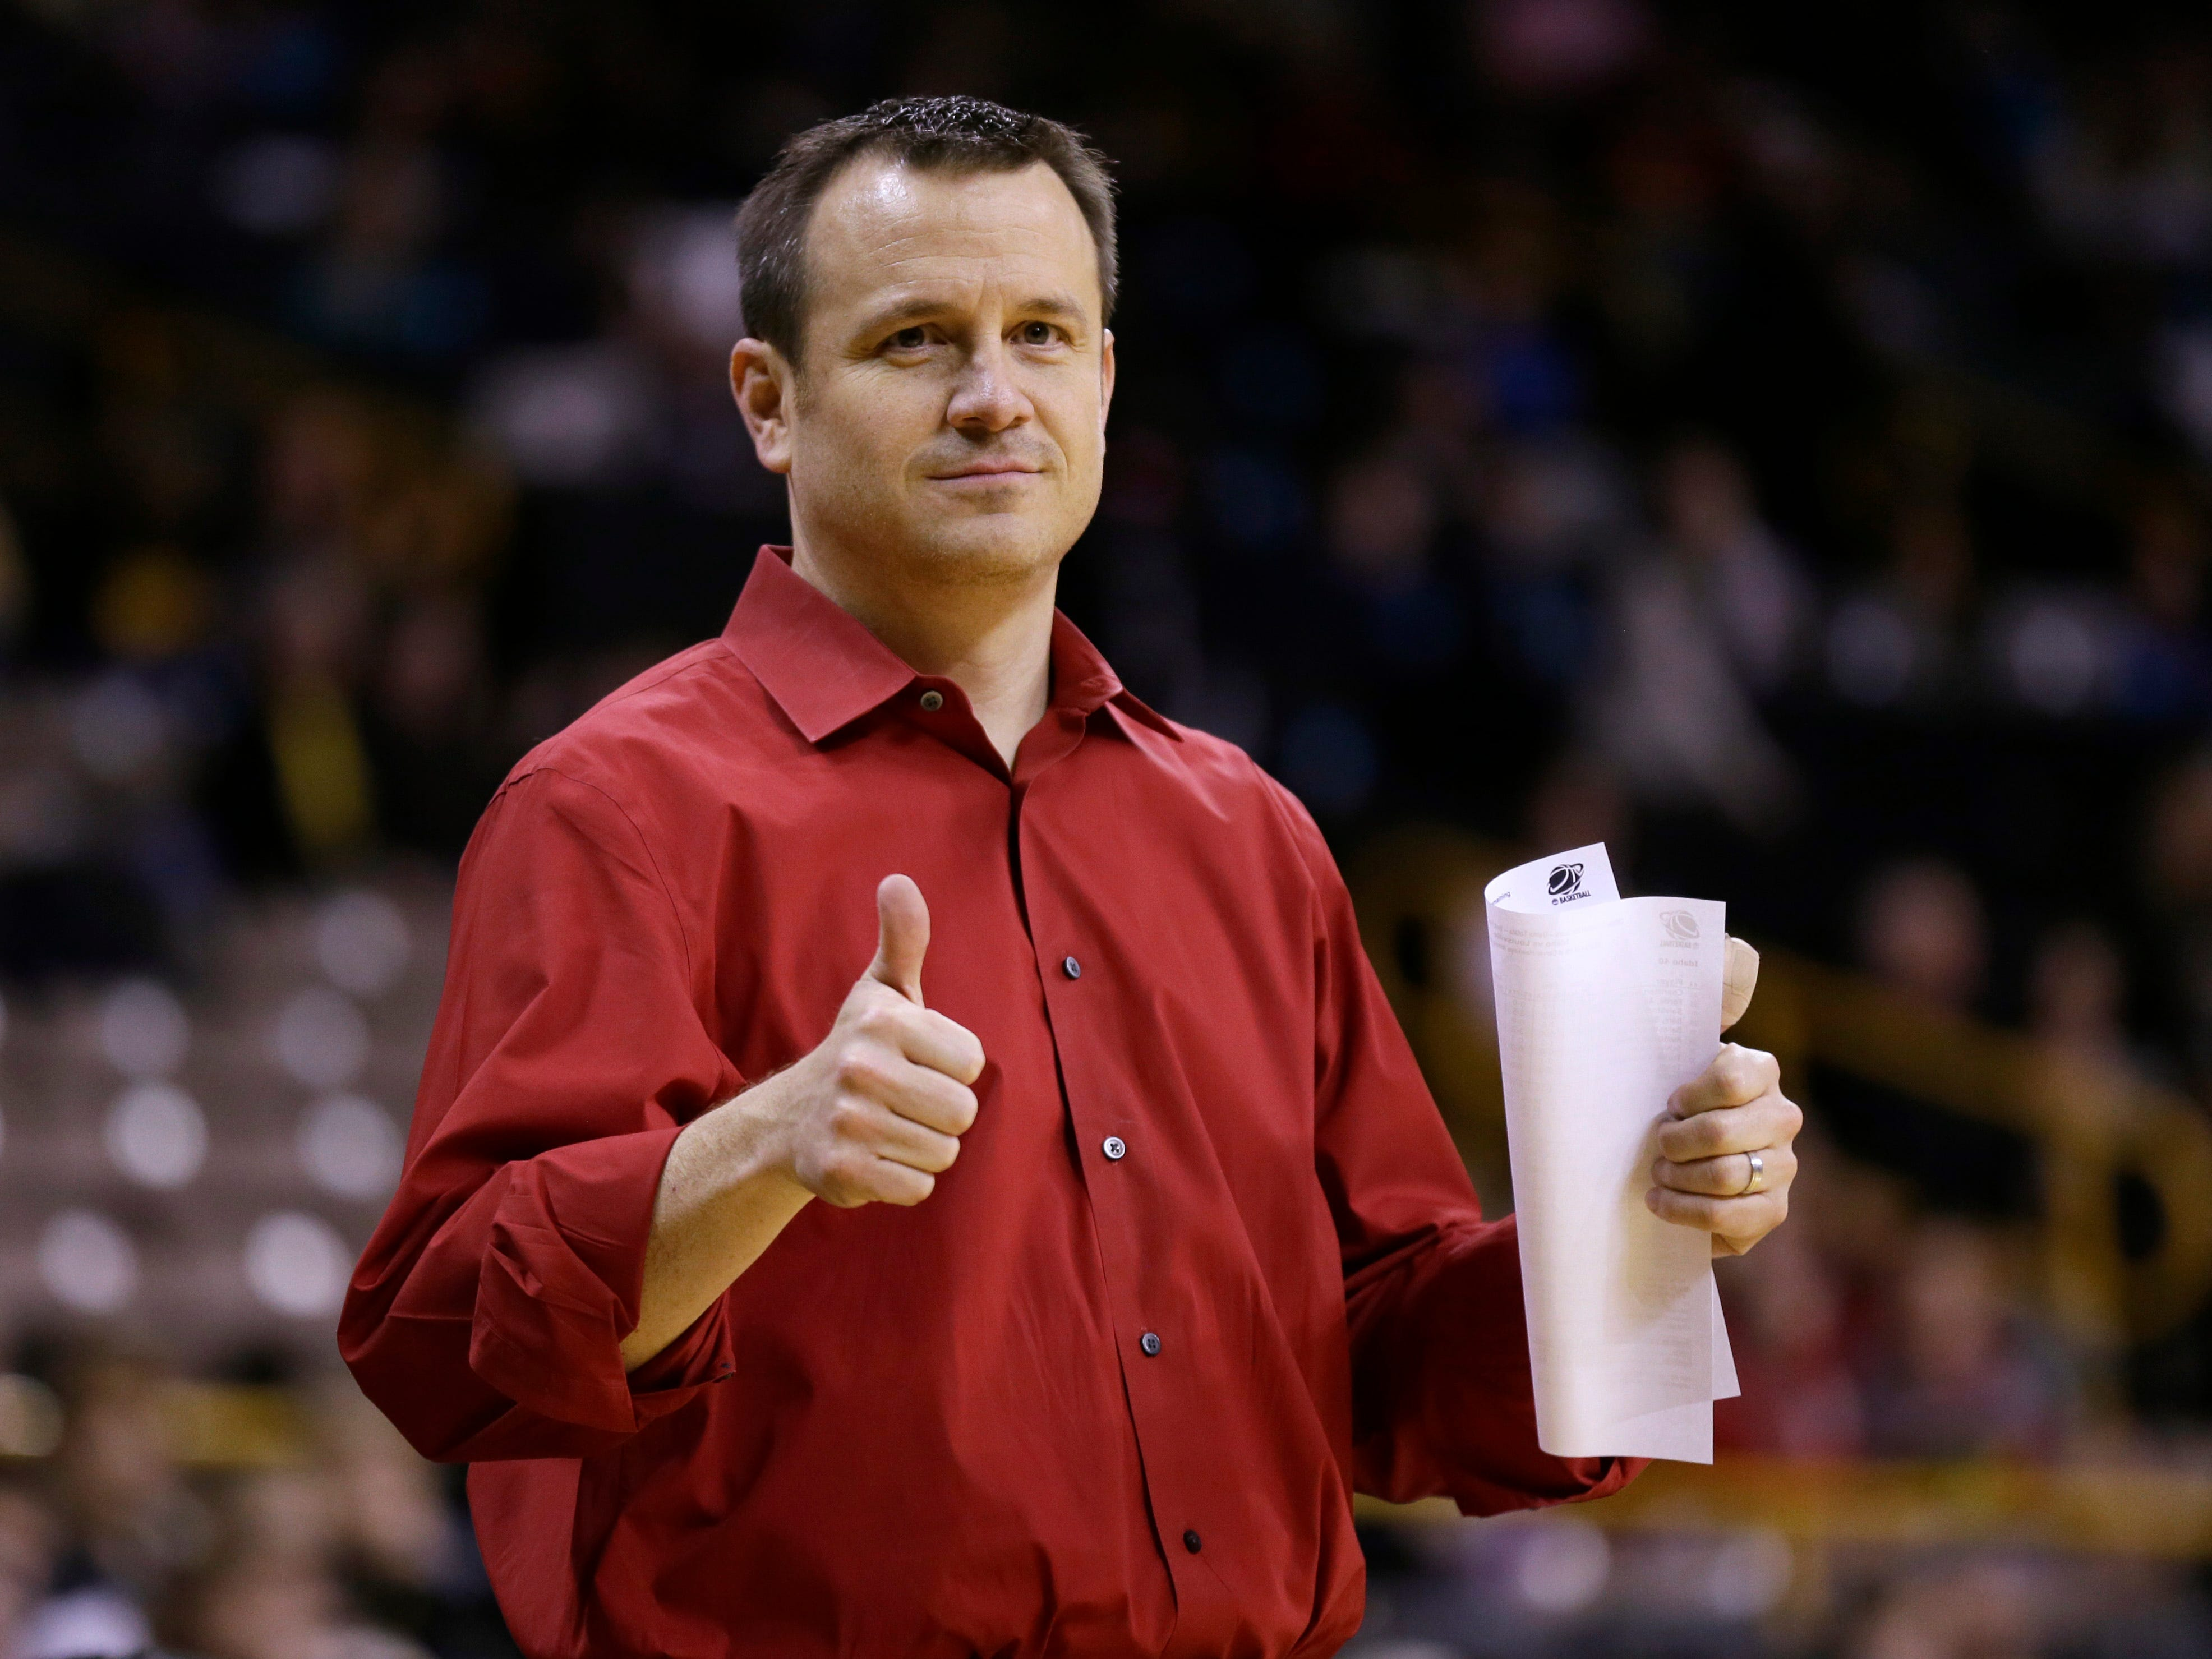 Louisville head coach Jeff Walz reacts on the bench during the second half of an NCAA tournament first-round women's college basketball game against Idaho, Sunday, March 23, 2014, in Iowa City, Iowa. Louisville won 88-42. (AP Photo/Charlie Neibergall)